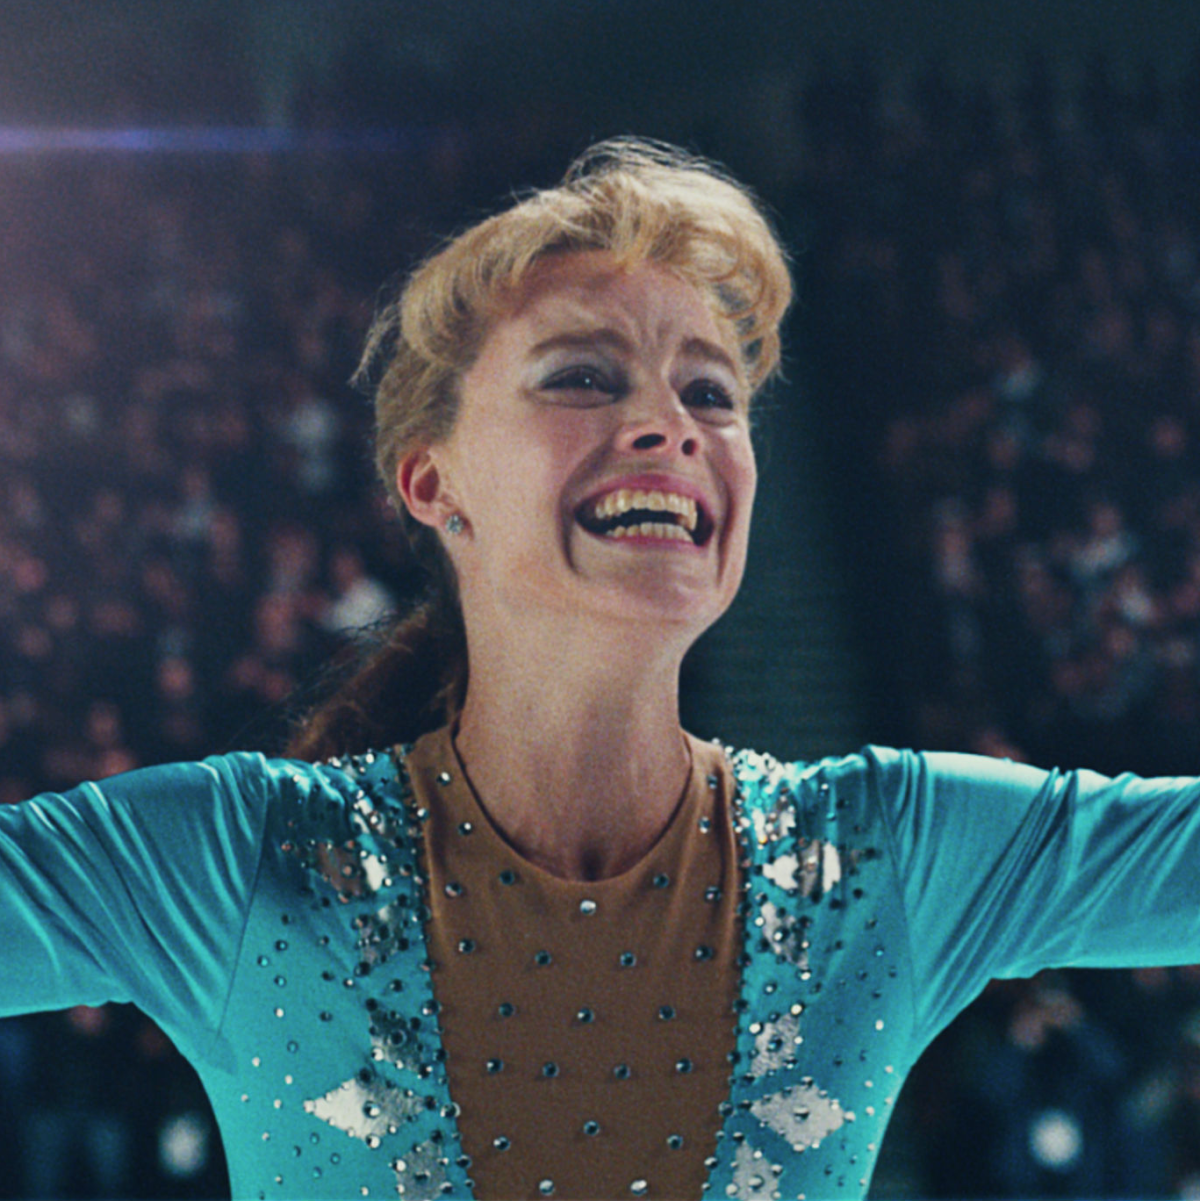 Margot Robbie in I, Tonya